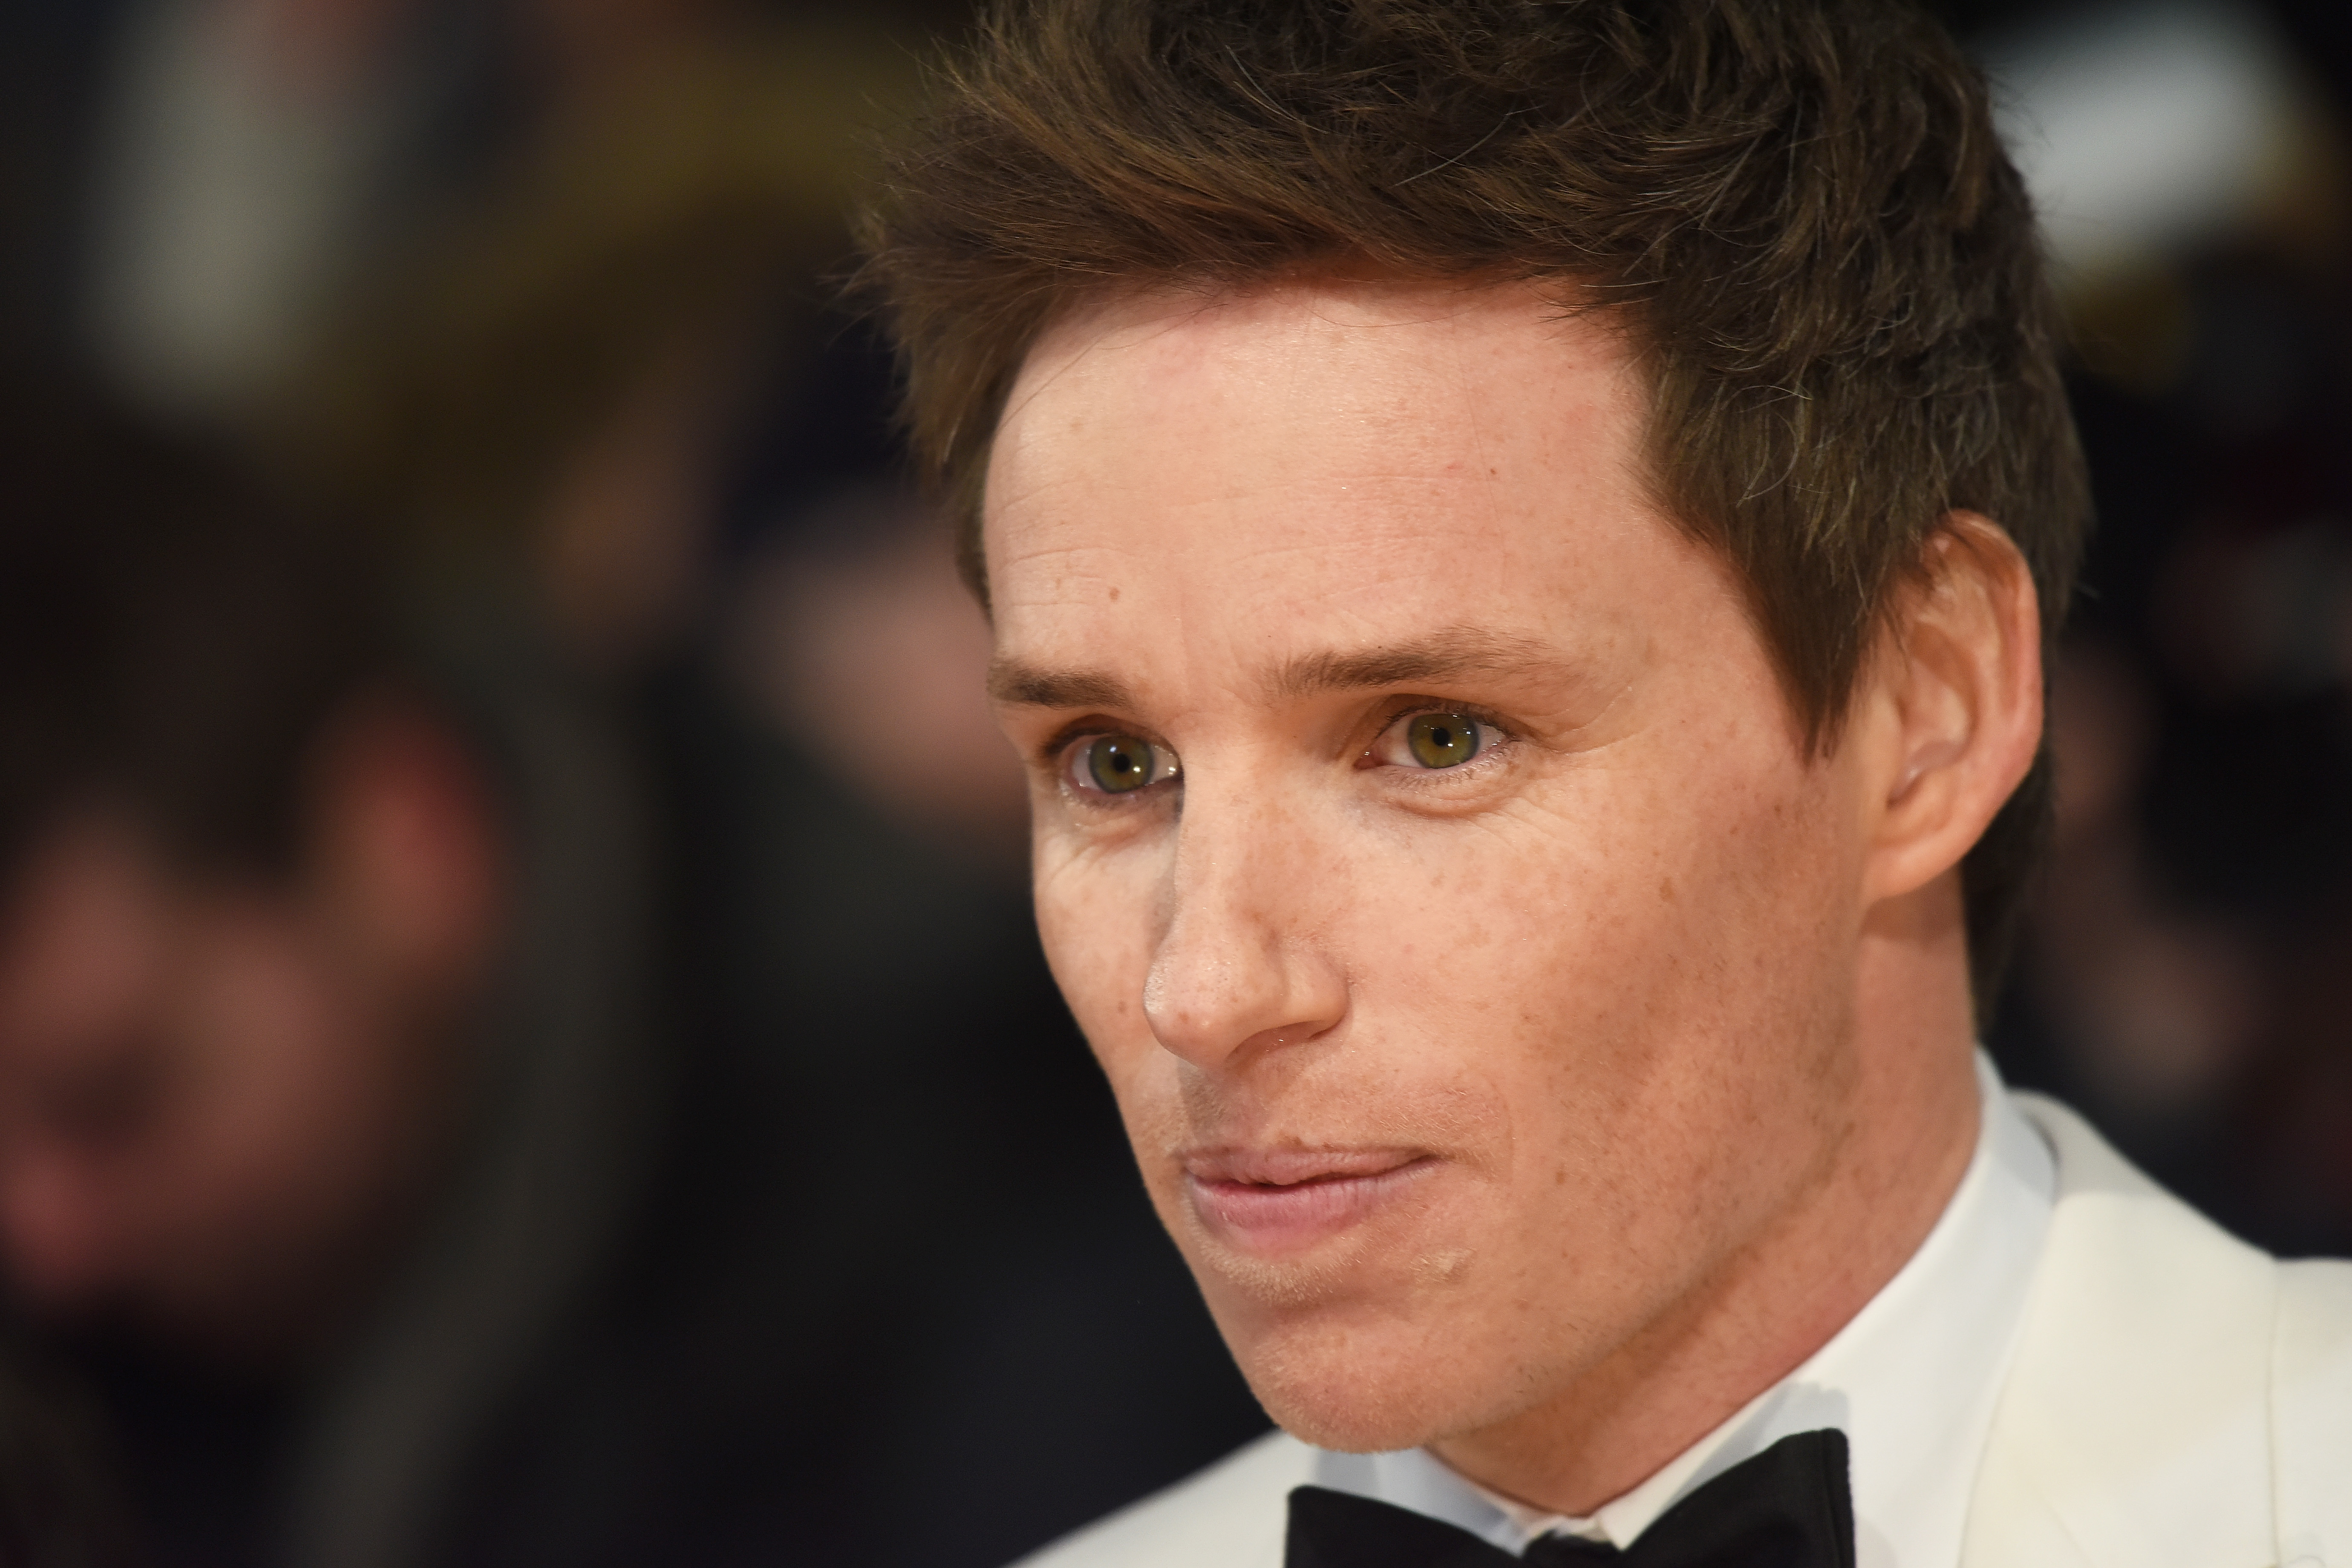 Eddie Redmayne attends the 70th EE British Academy Film Awards (BAFTA) at Royal Albert Hall on February 12, 2017 in London, England.